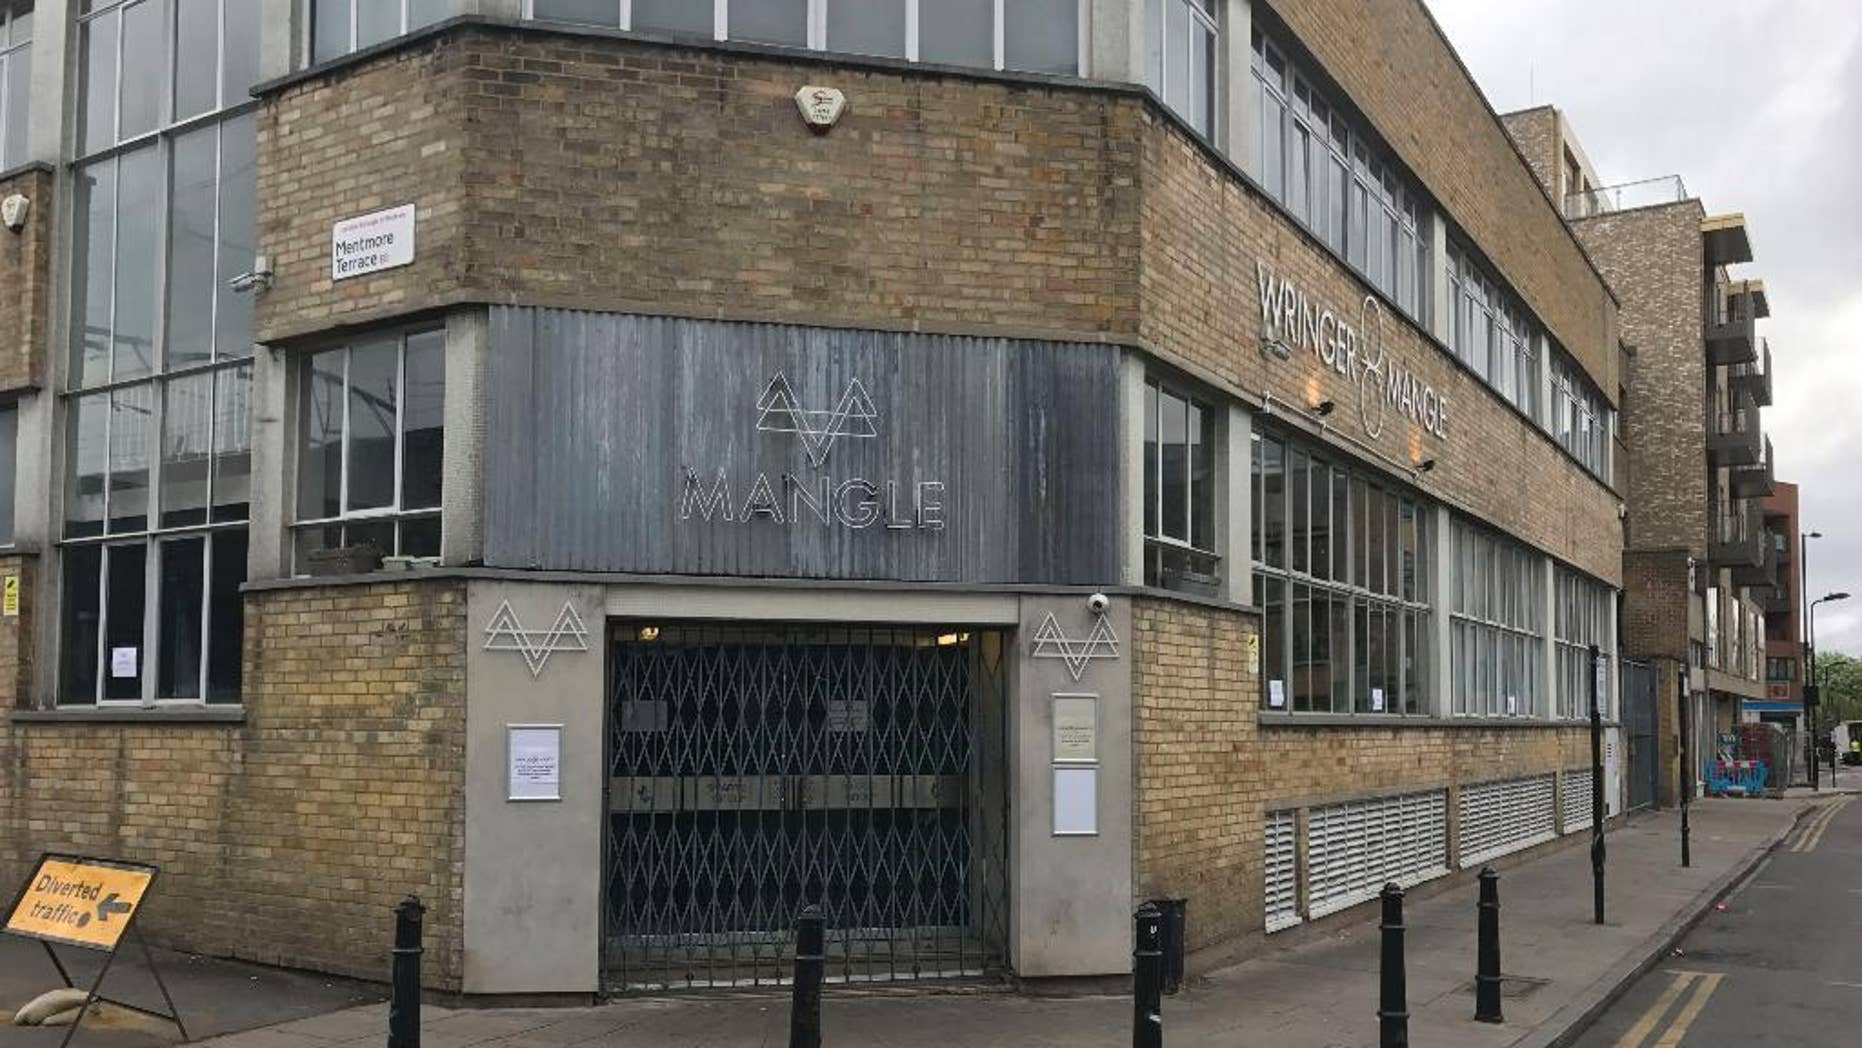 General view of the Mangle nightclub in Dalston, east London on Monday April 17, 2017. London police are investigating an acid attack at a London club that led to a mass evacuation with 12 people injured. Police said Monday April 17, 2017 that 12 people were treated at hospitals for burns. None of the injuries were said to be life-threatening.   (Jack Hard/PA via AP)